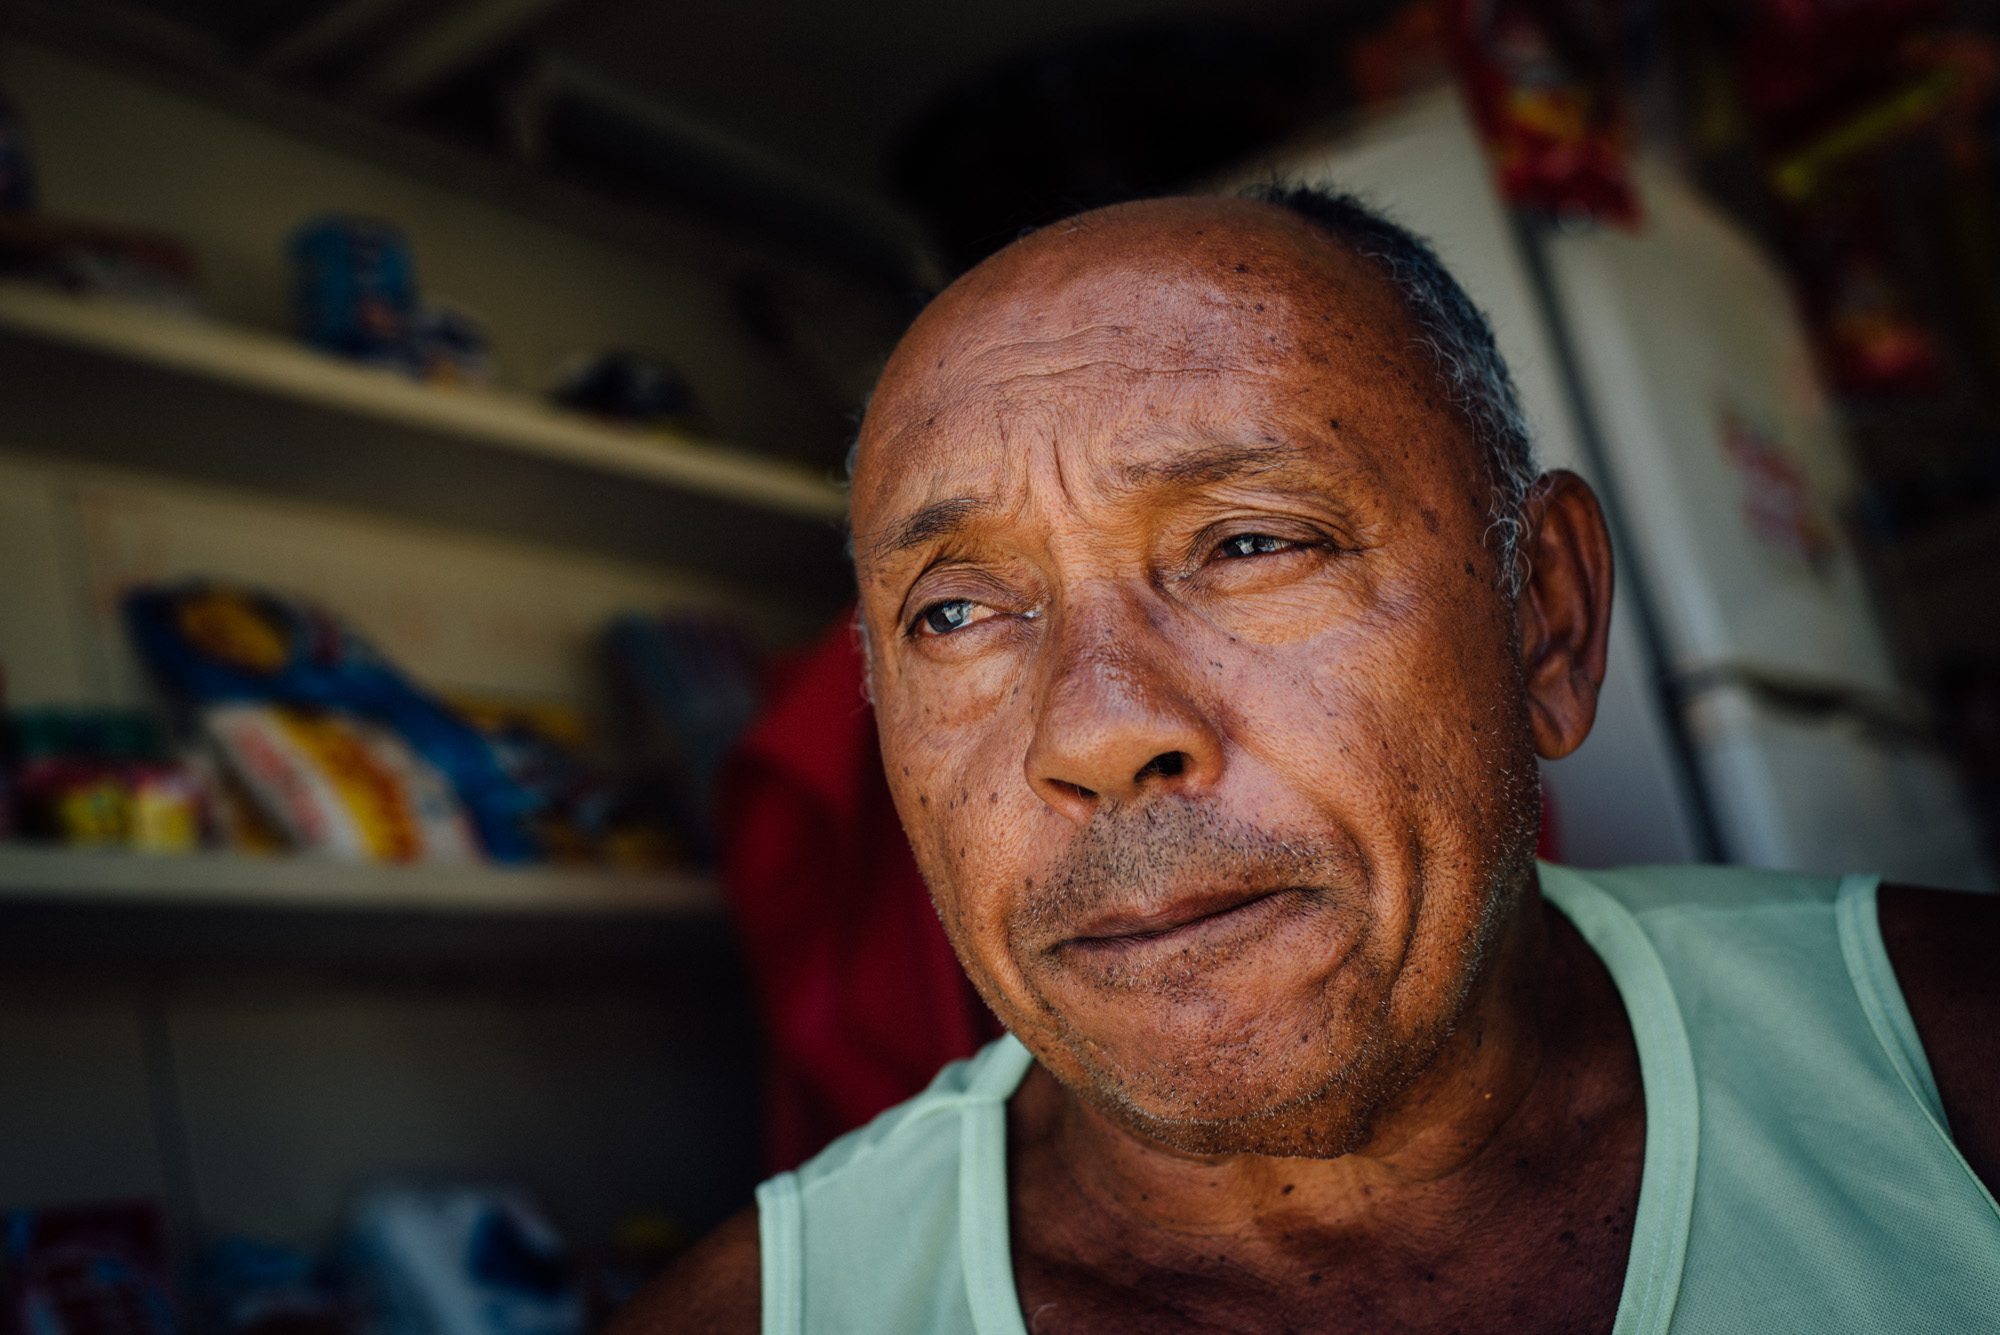 Cicero dos Santos, 64, talks about his life. Dos Santos says it's been hard adapting to life in rural Paraiba state after moving from Sao Paulo only one month ago to be with his girlfriend. Dos Santos manages a small shop where he sells everything from potato chips to batteries to keys.